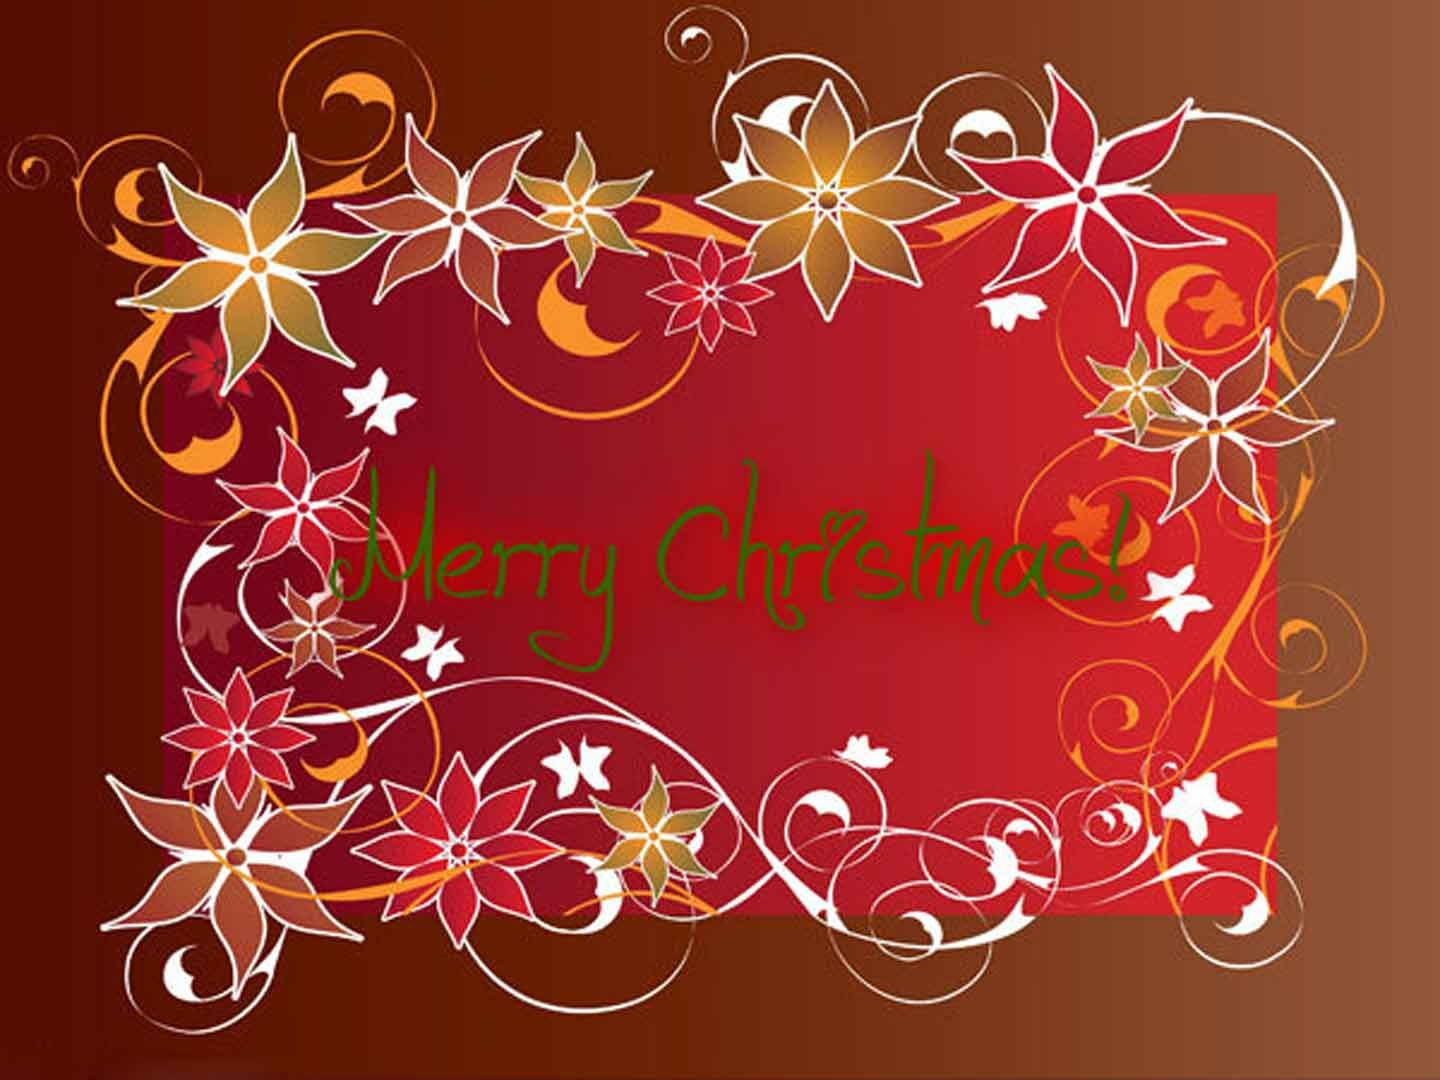 Merry Christmas Greeting Cards Free Download Merry Christmas Card Greetings Merry Christmas Card Creative Christmas Cards